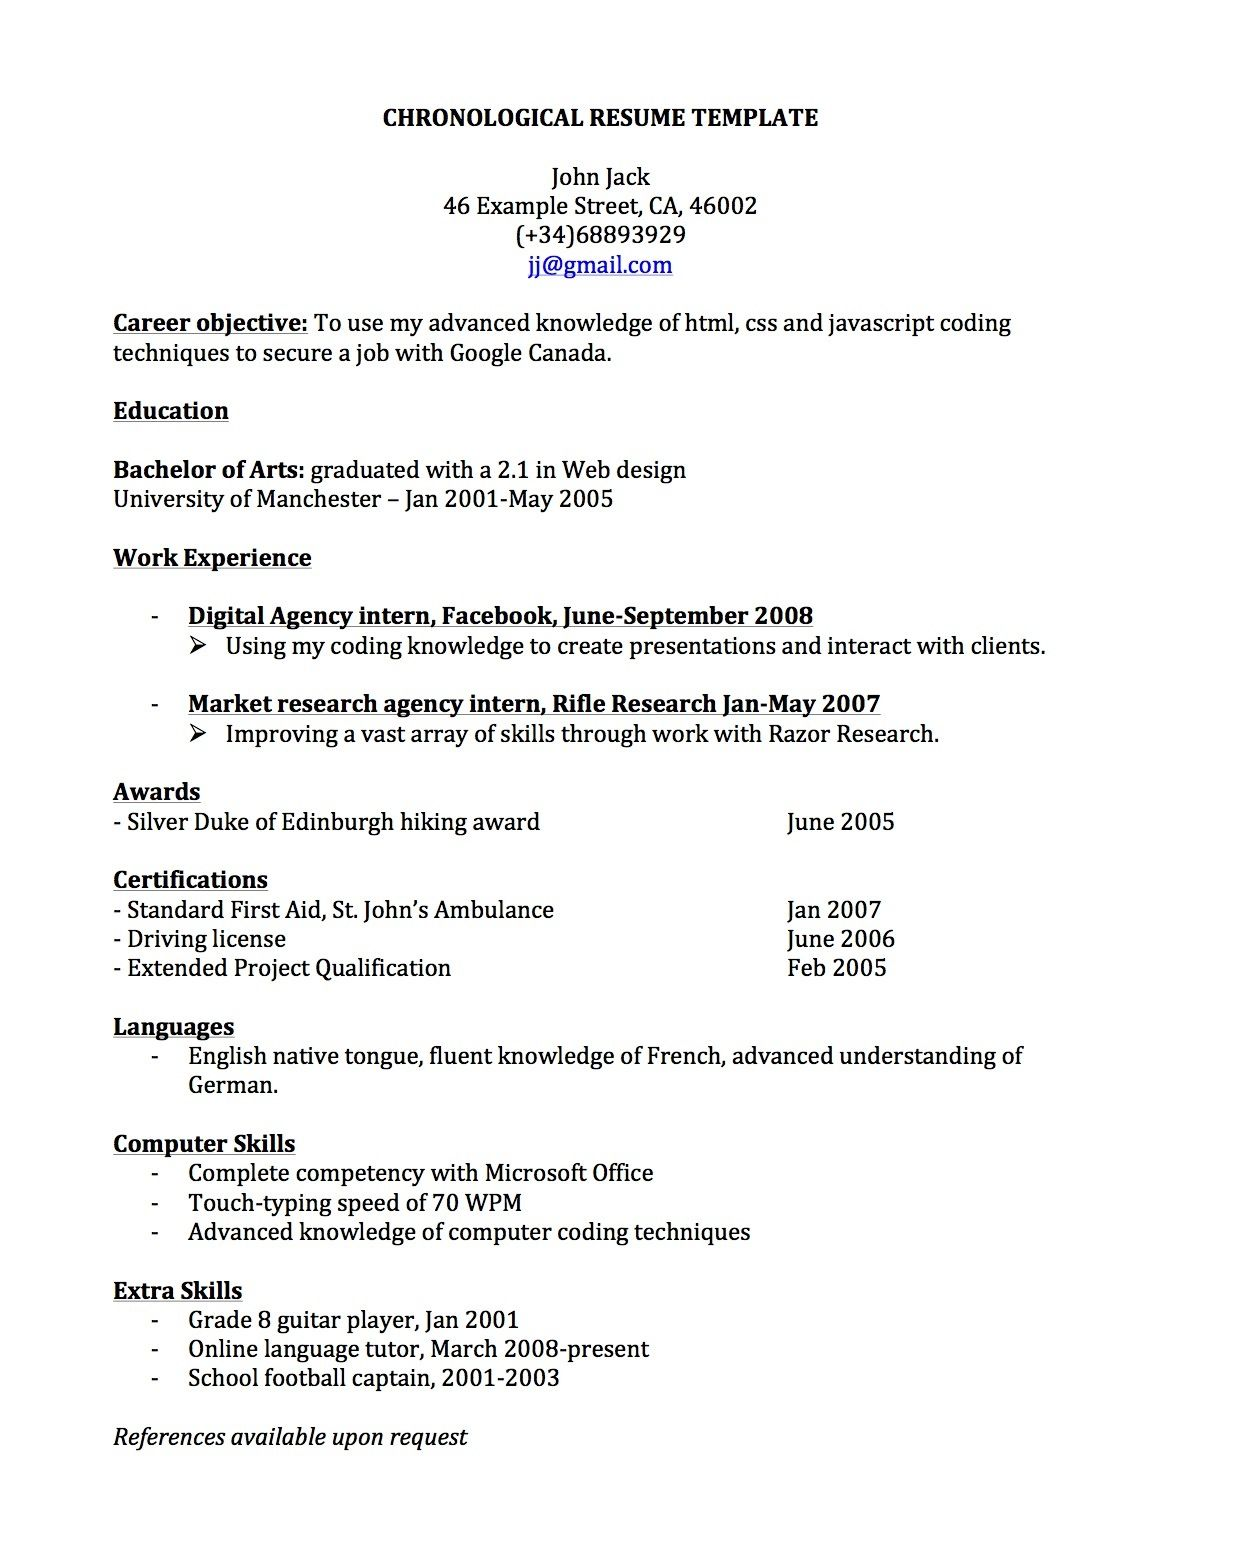 Cv Template Spain Chronological resume template, Job